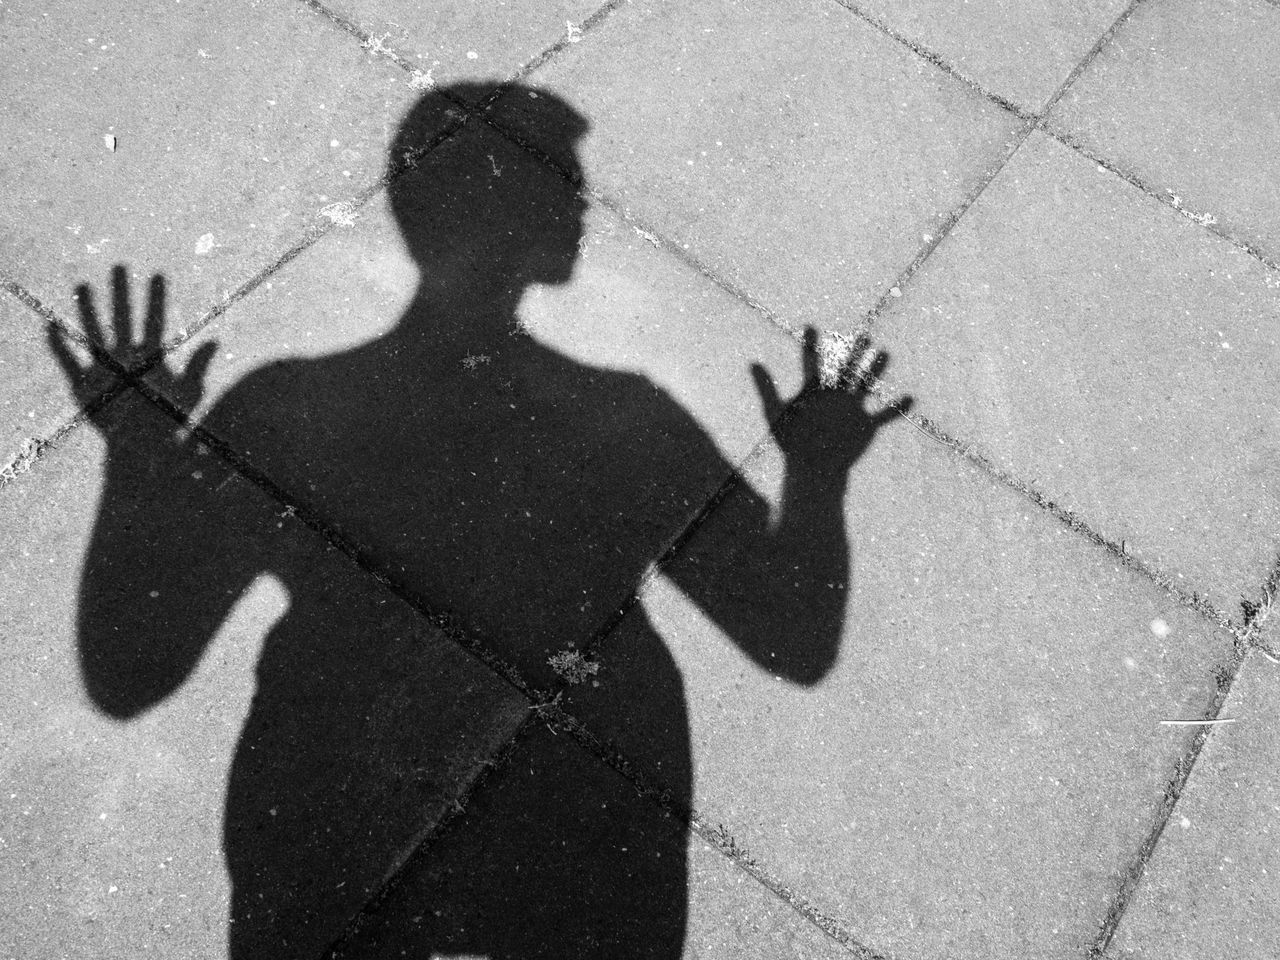 Black And White Childhood Day Focus On Shadow Gesturing High Angle View Human Hand Leisure Activity Lifestyles Men One Person Outdoors People Real People Self Portrait Shadow Streetphotography Sunlight Textures The Street Photographer - 2017 EyeEm Awards Tiles